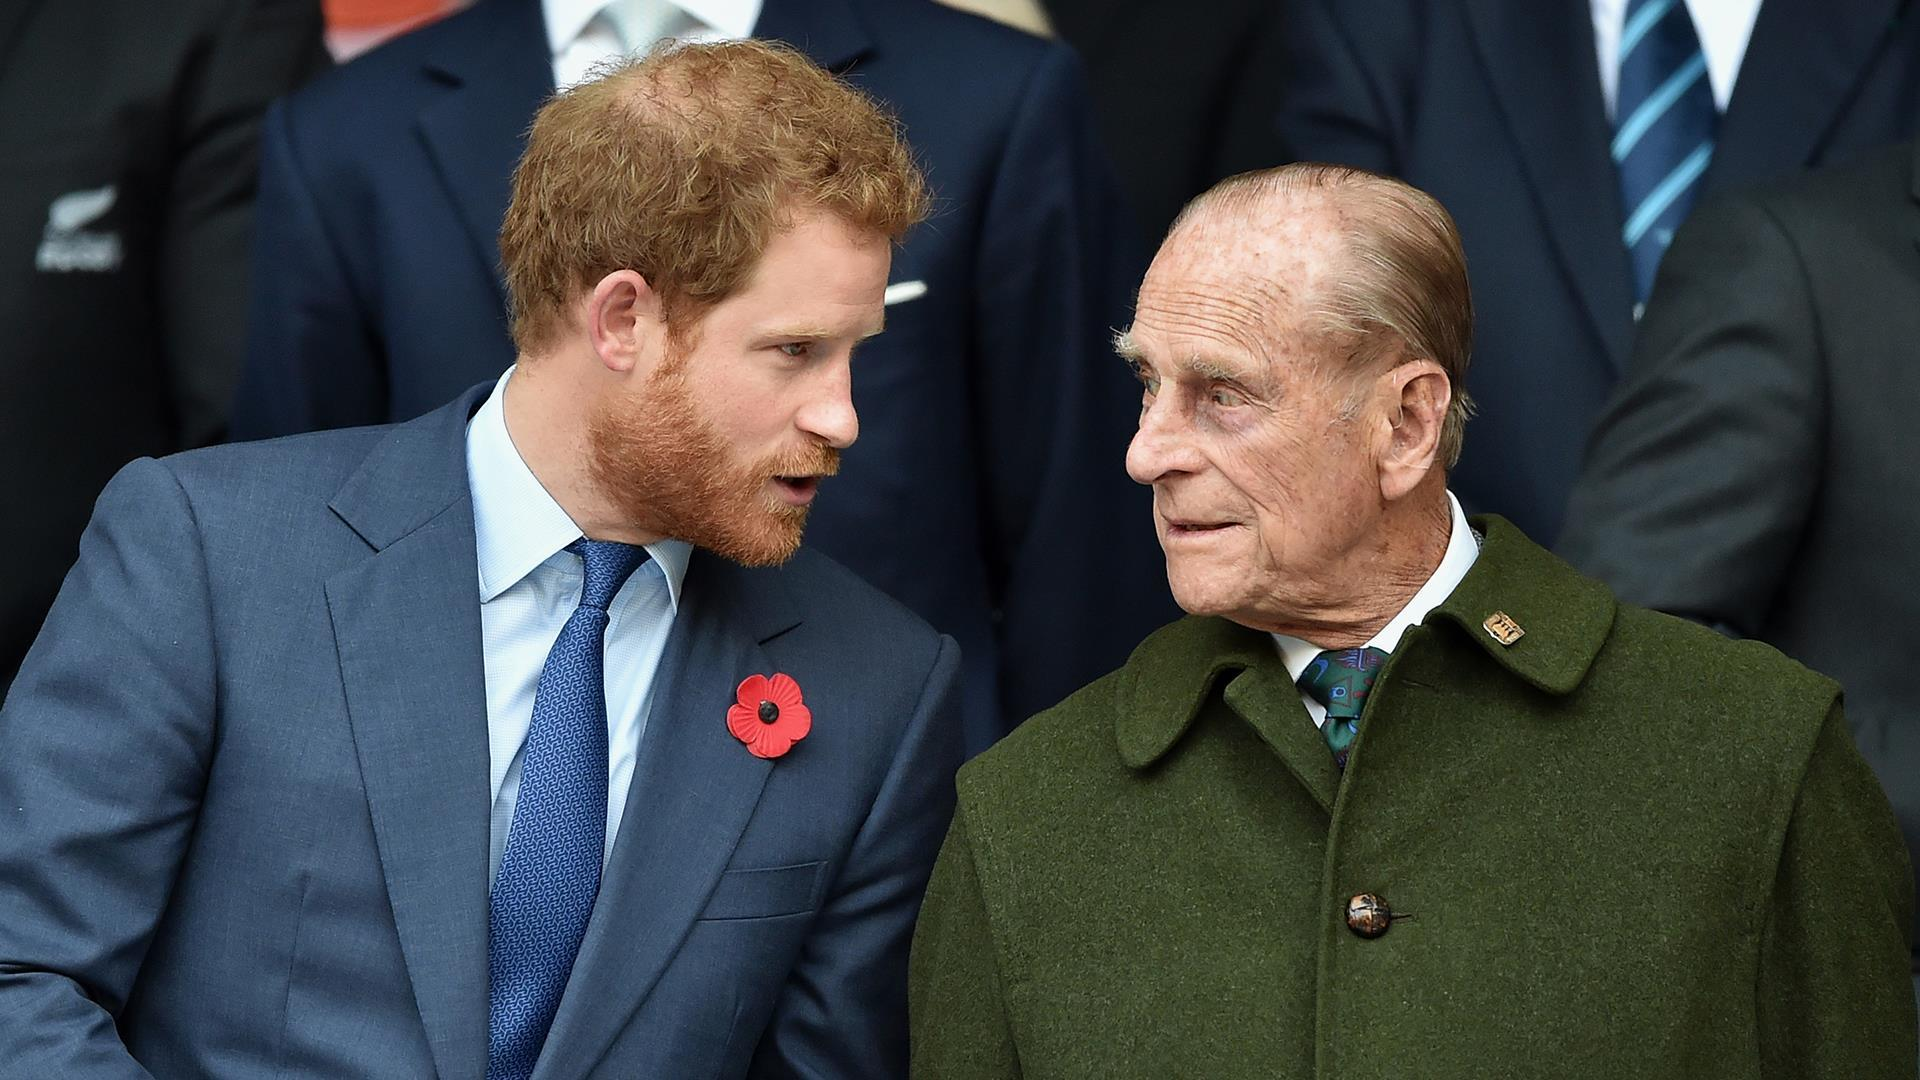 Prince Harry, whose explosive interview alongside his wife Meghan plunged the royal family into its biggest crisis in decades, has arrived back in Britain for Prince Philip's funeral. — Photo via Yahoo! News